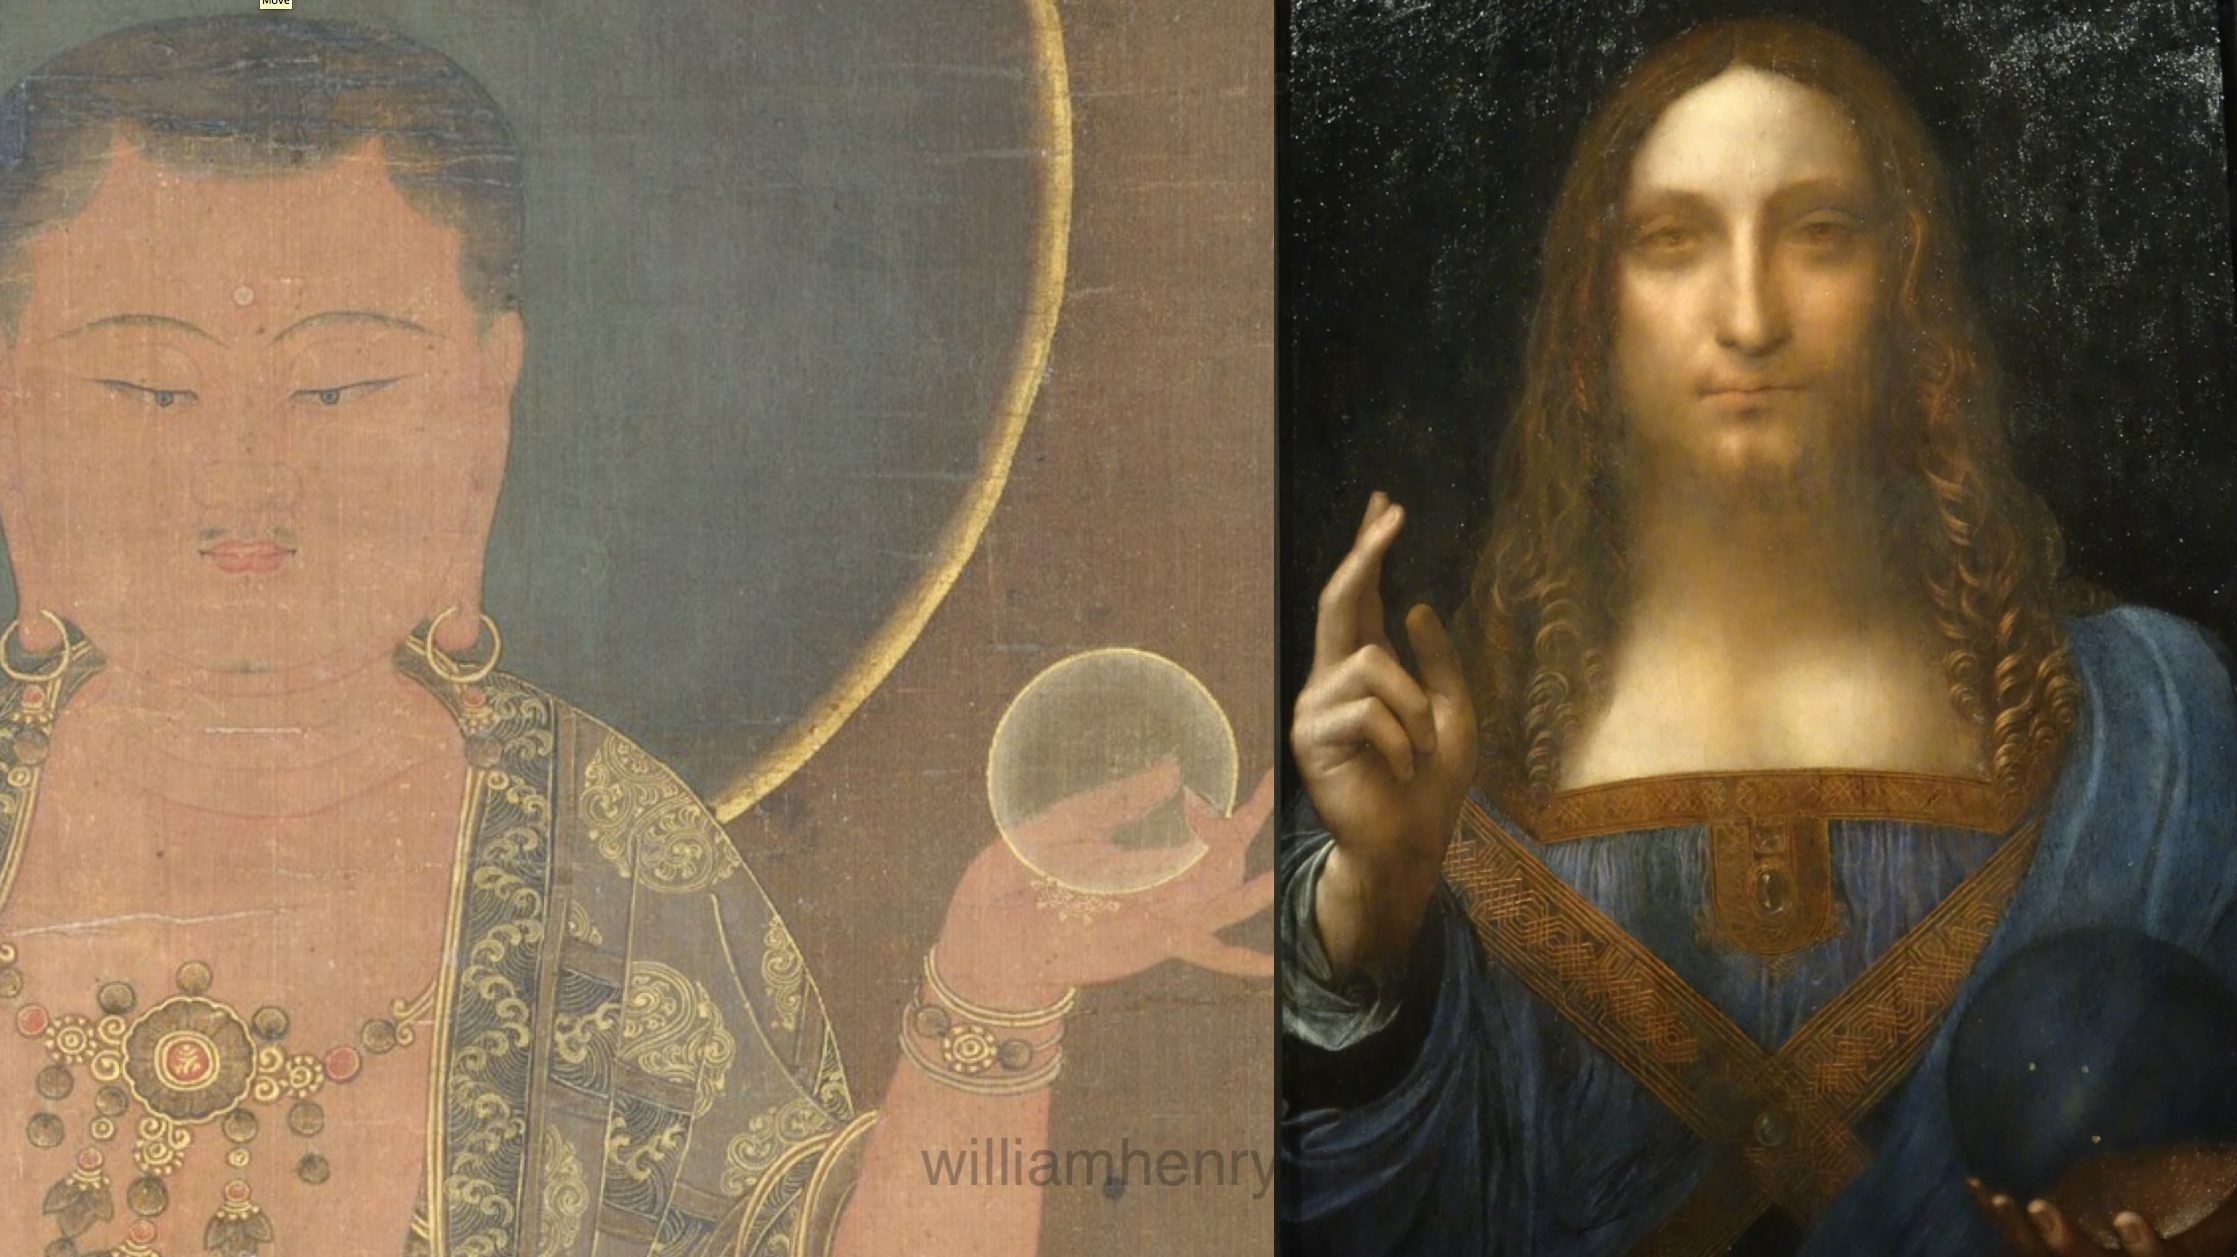 Salvator Mundi Discovery >> SEEING SALVATOR MUNDI : A MOMENT OF TRANSCENDENCE IN LEONARDO'S VORTEX | William Henry